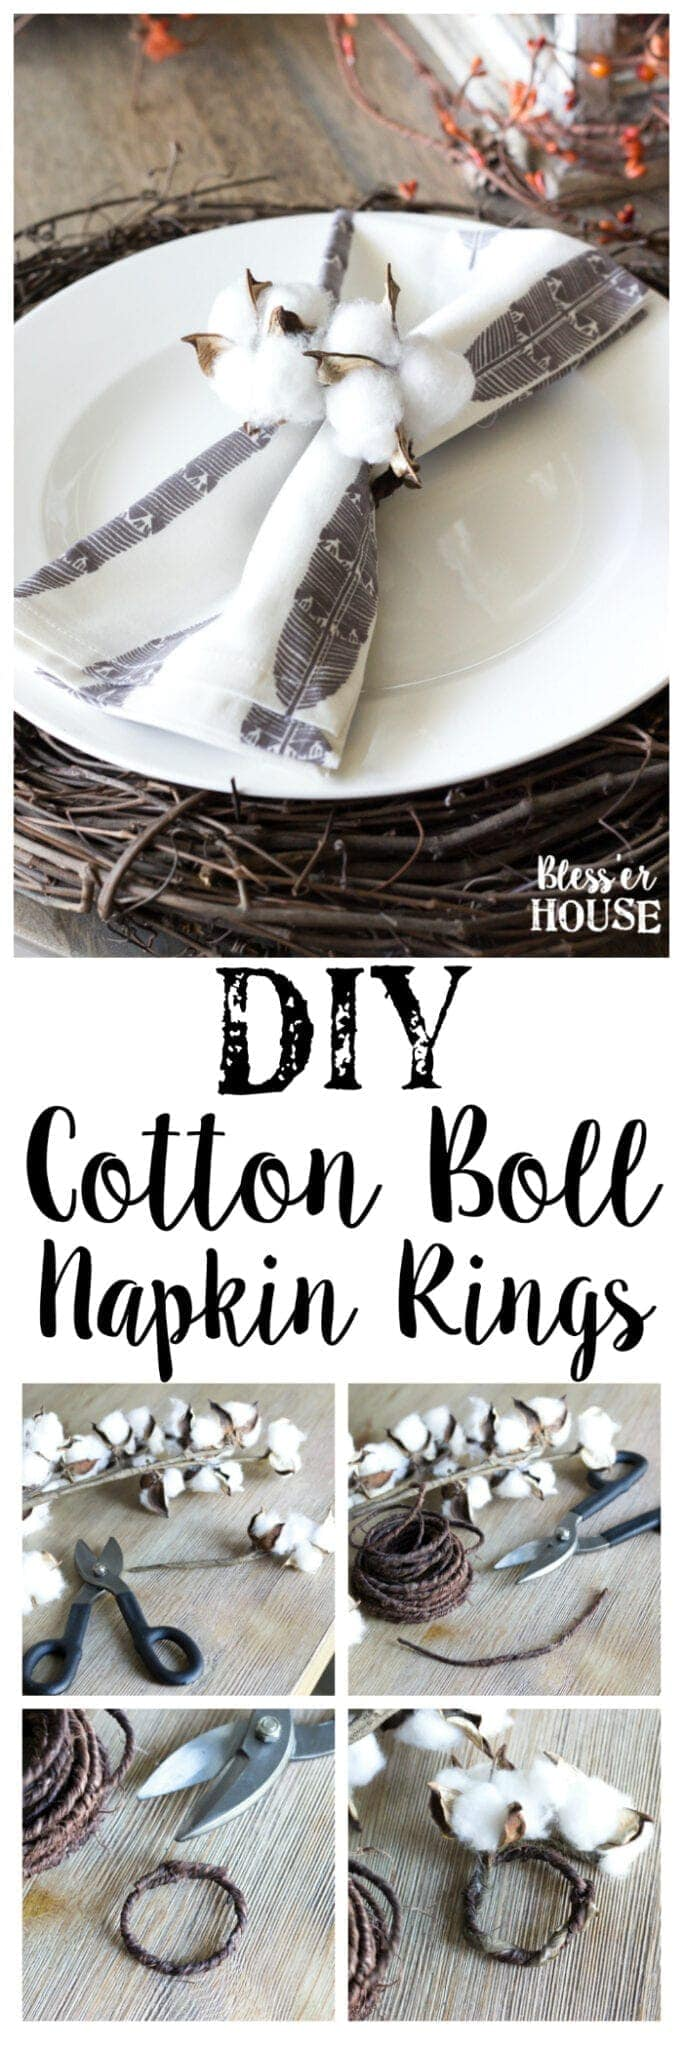 DIY Cotton Boll Napkin Rings | blesserhouse.com - A quick, easy, and inexpensive fall craft to make cotton boll napkin rings using just wire and artificial cotton stems.